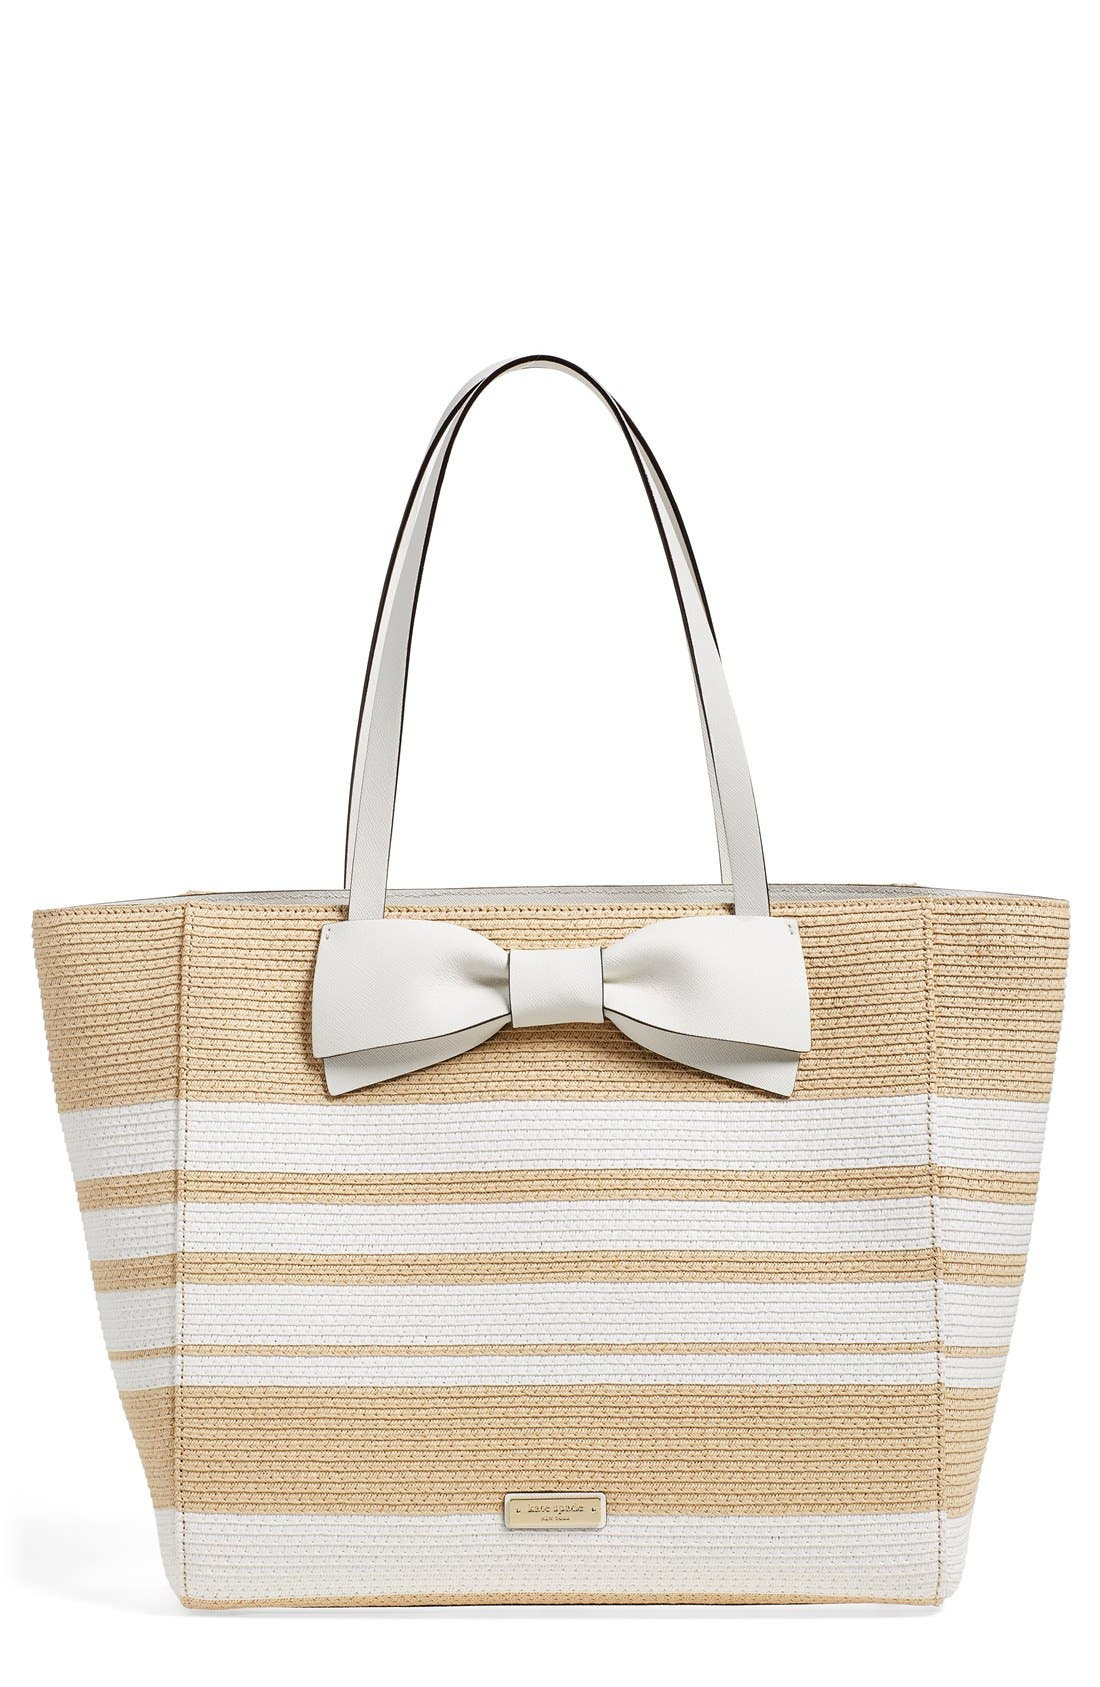 Main Image - kate spade new york 'clement street - blair' woven straw tote